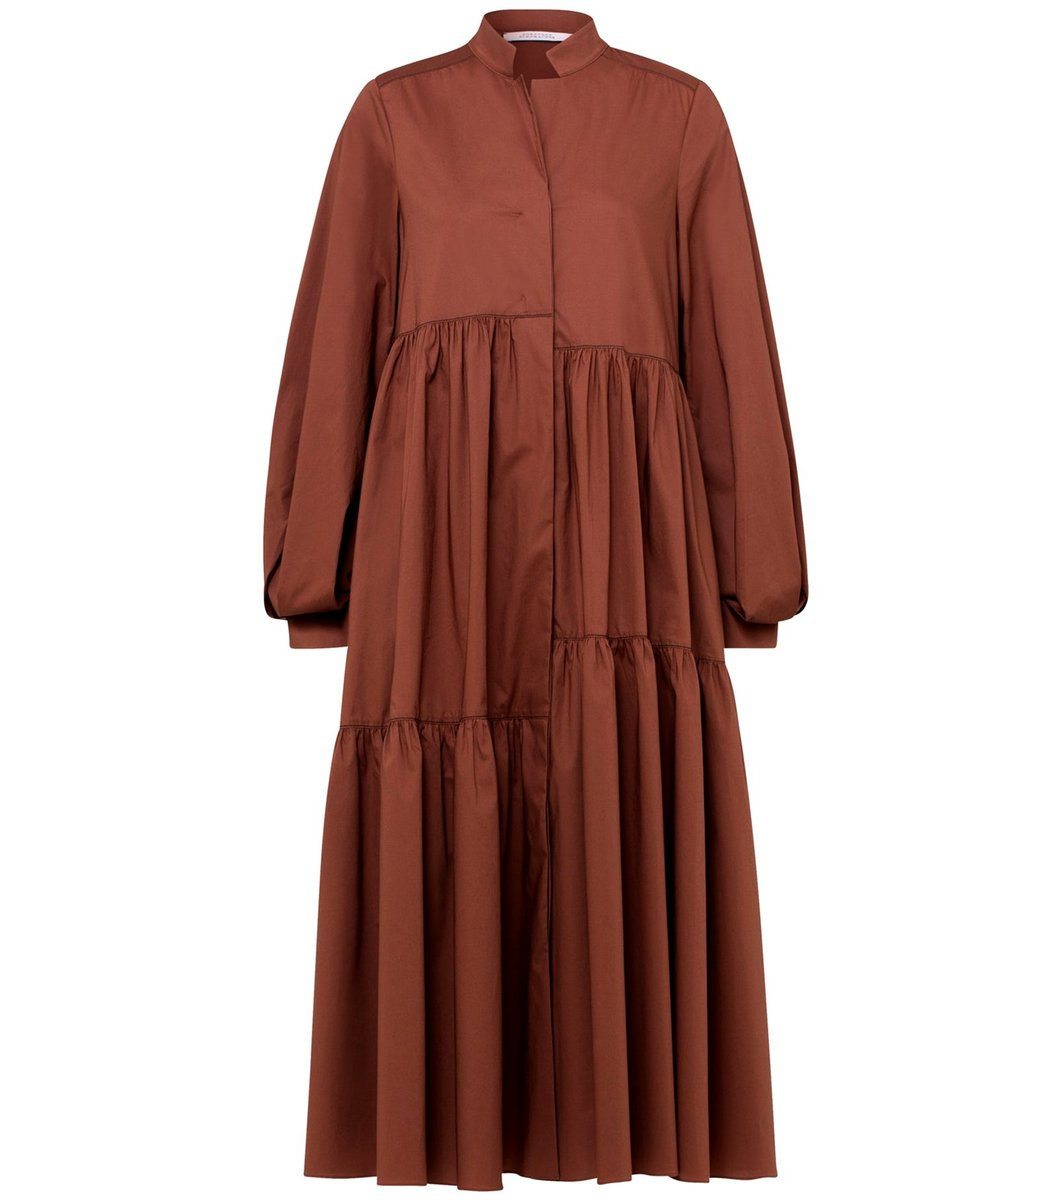 Dorothee Schumacher Poplin Power Dress in Nougat Brown TS